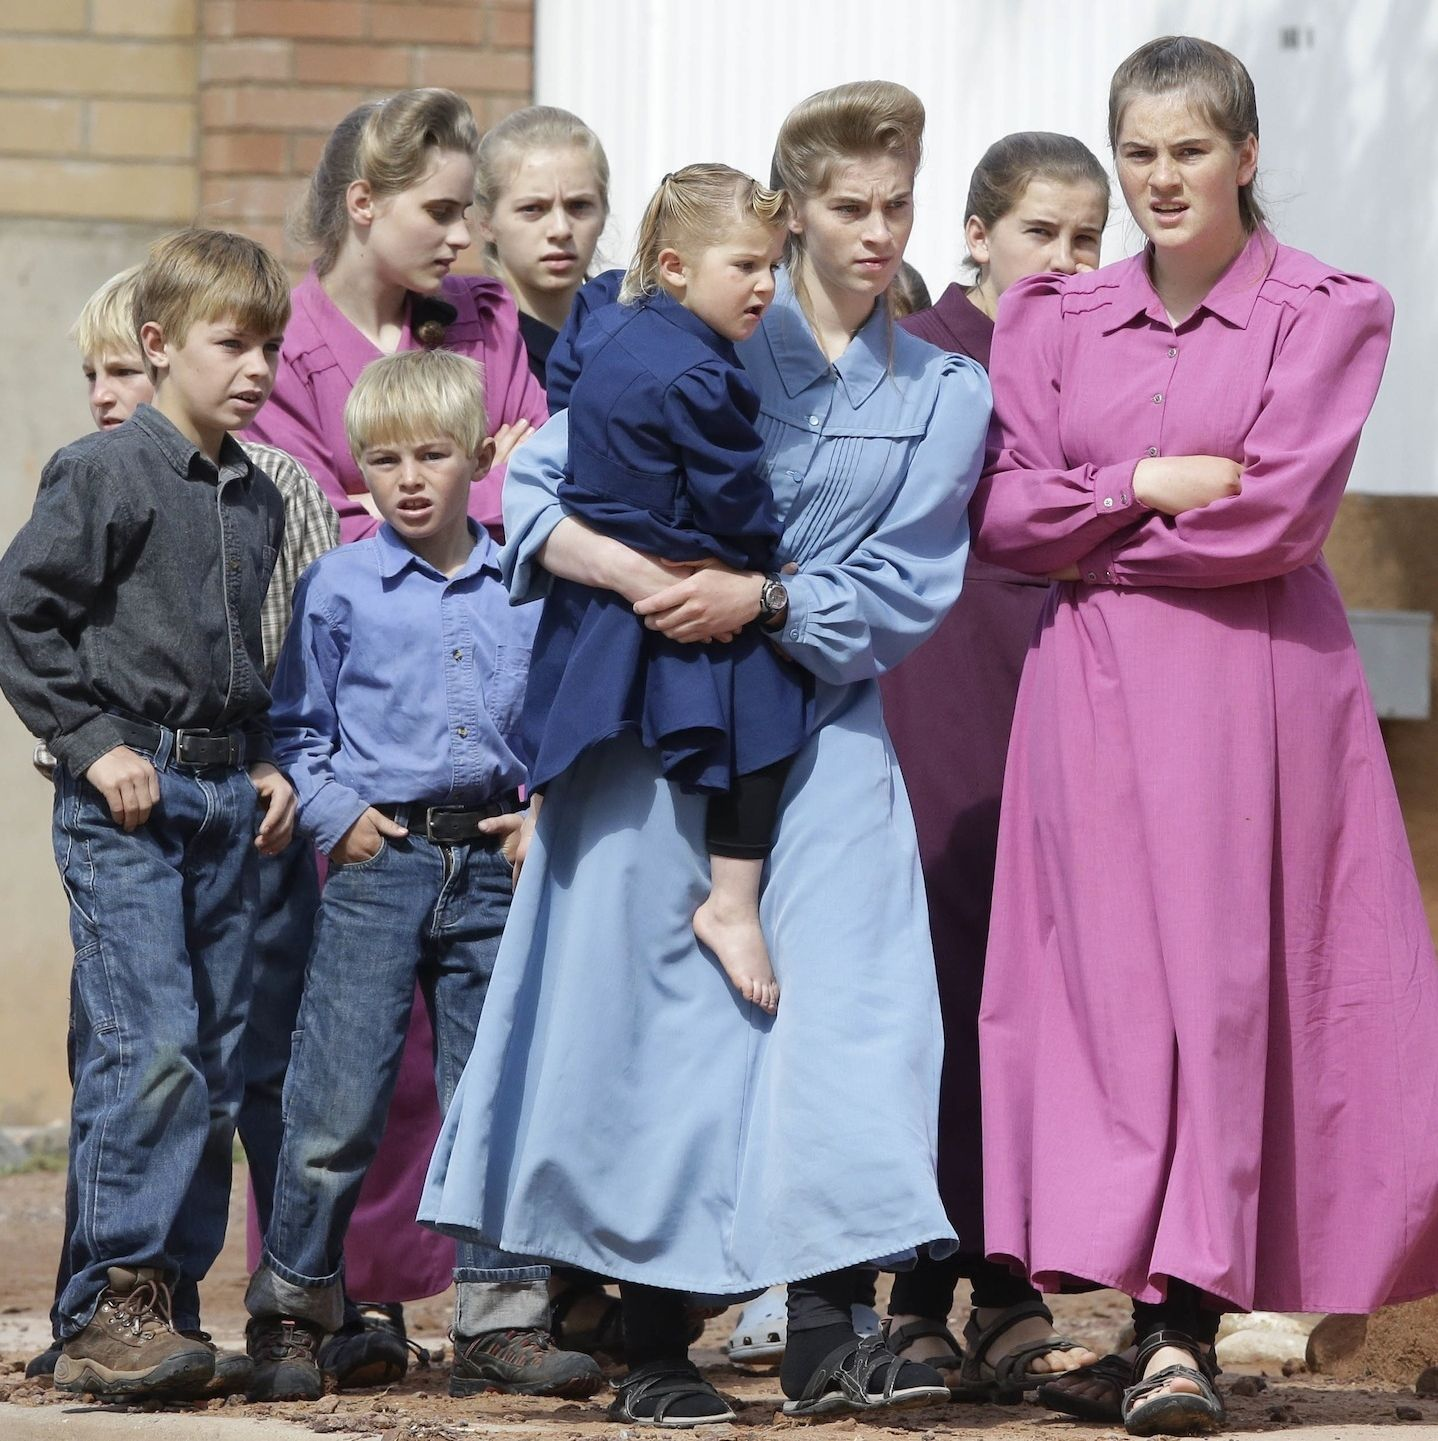 A Food Stamp Fraud Case Could Bring Down A Polygamous Sect